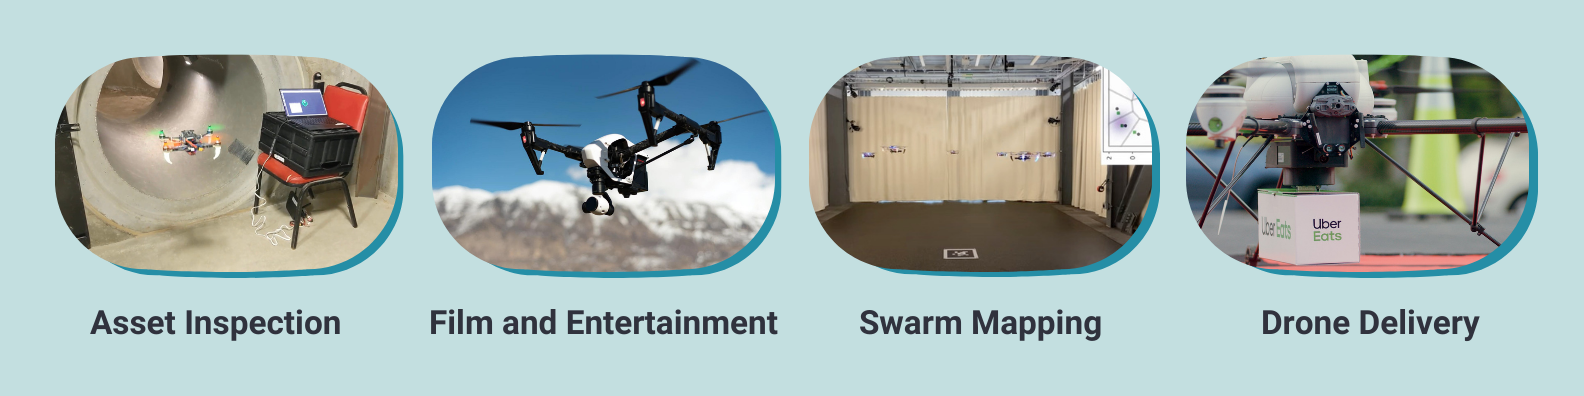 Asset Inspection, Film and Entertainment, Swarm Mapping, Drone Delivery